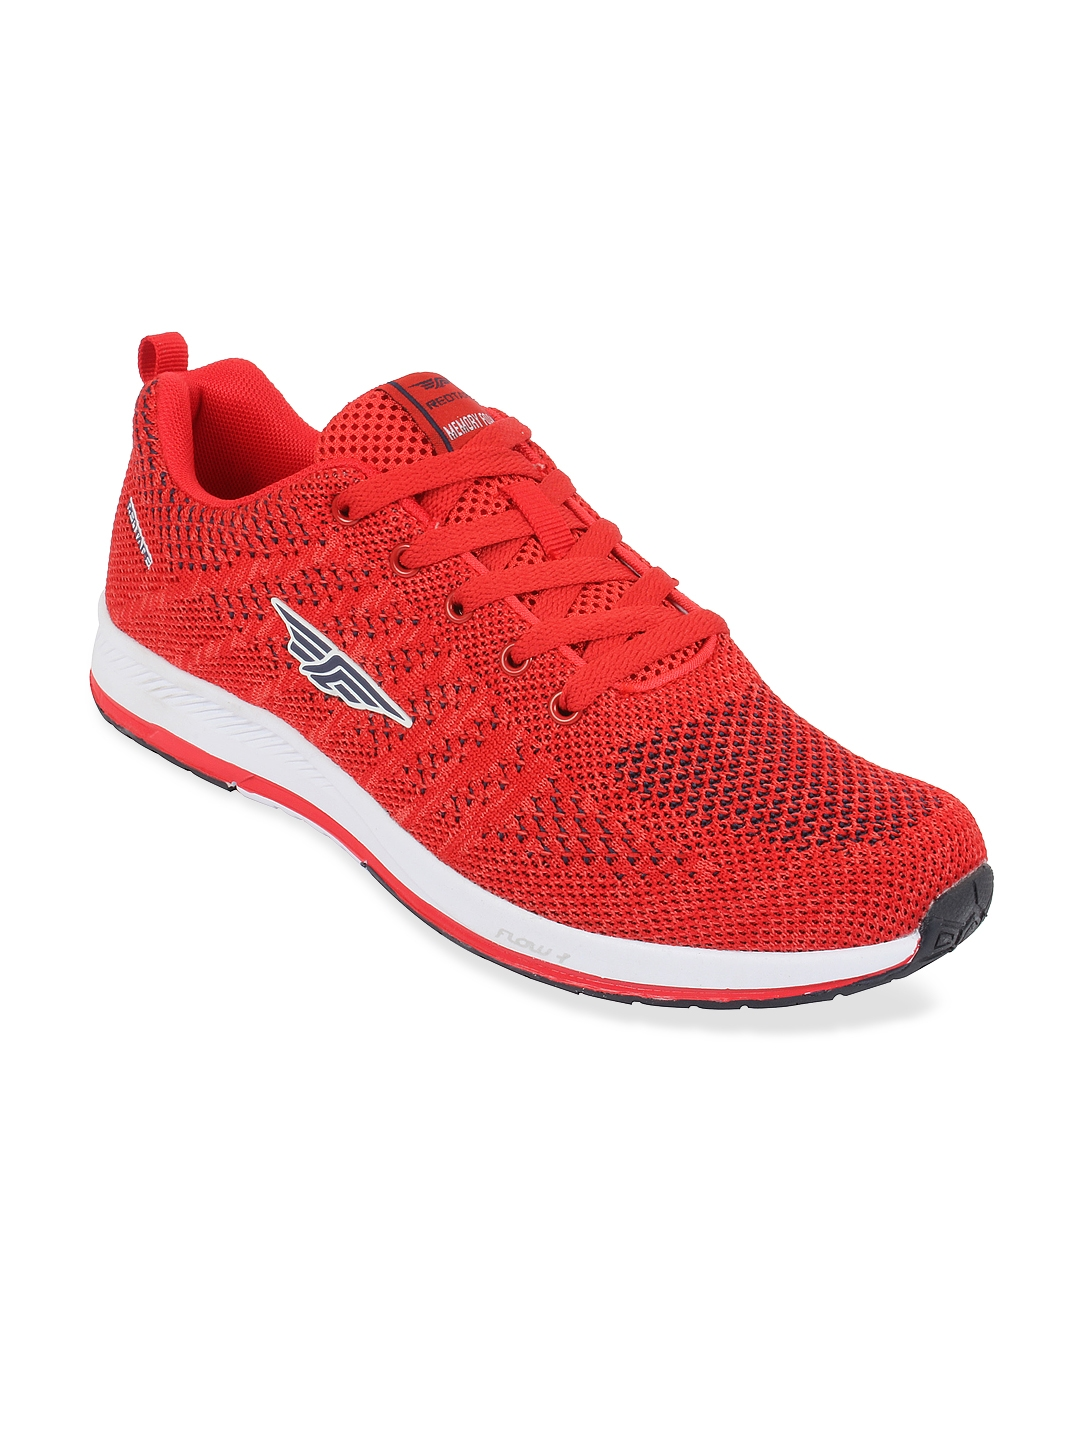 33c6c411769 Buy Red Tape Athleisure Sports Range Men Red Walking Shoes - Sports ...